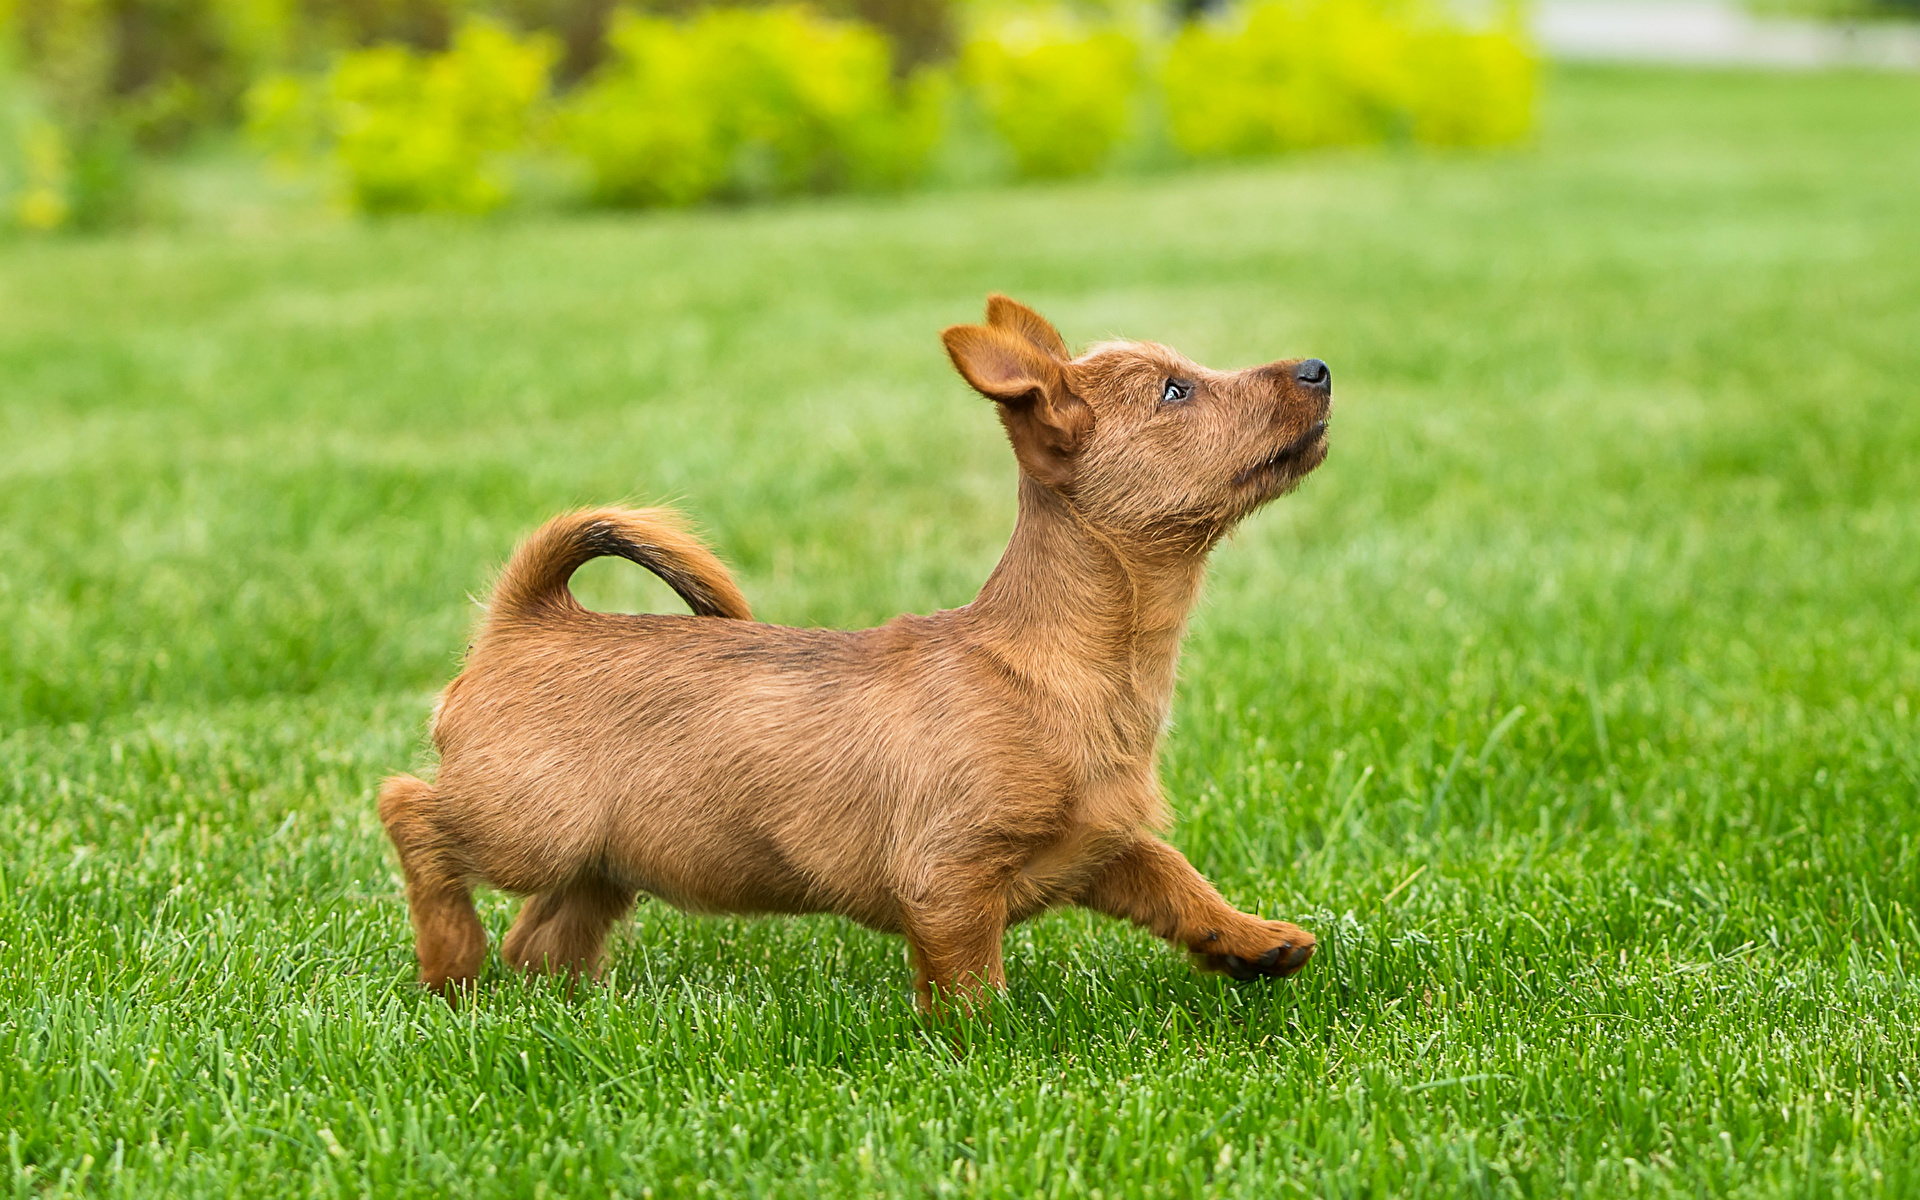 Dogs_Grass_Lawn_Puppy_468810_1920x1200